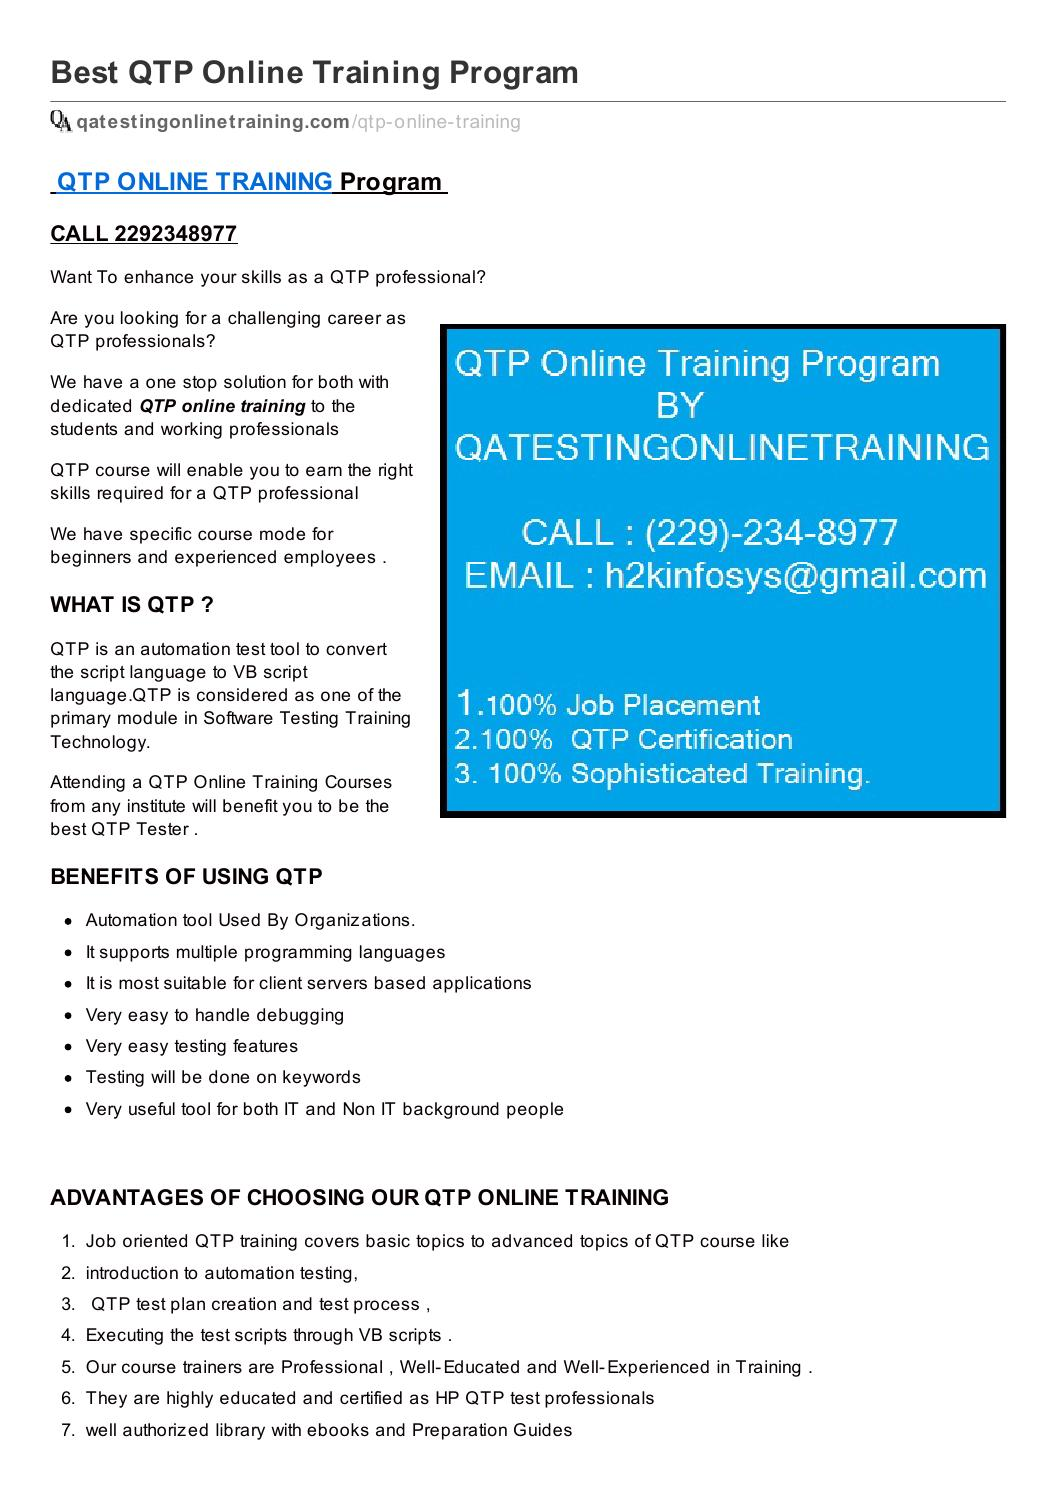 Qatestingonlinetraining Offers Qtp Online Training All Over The